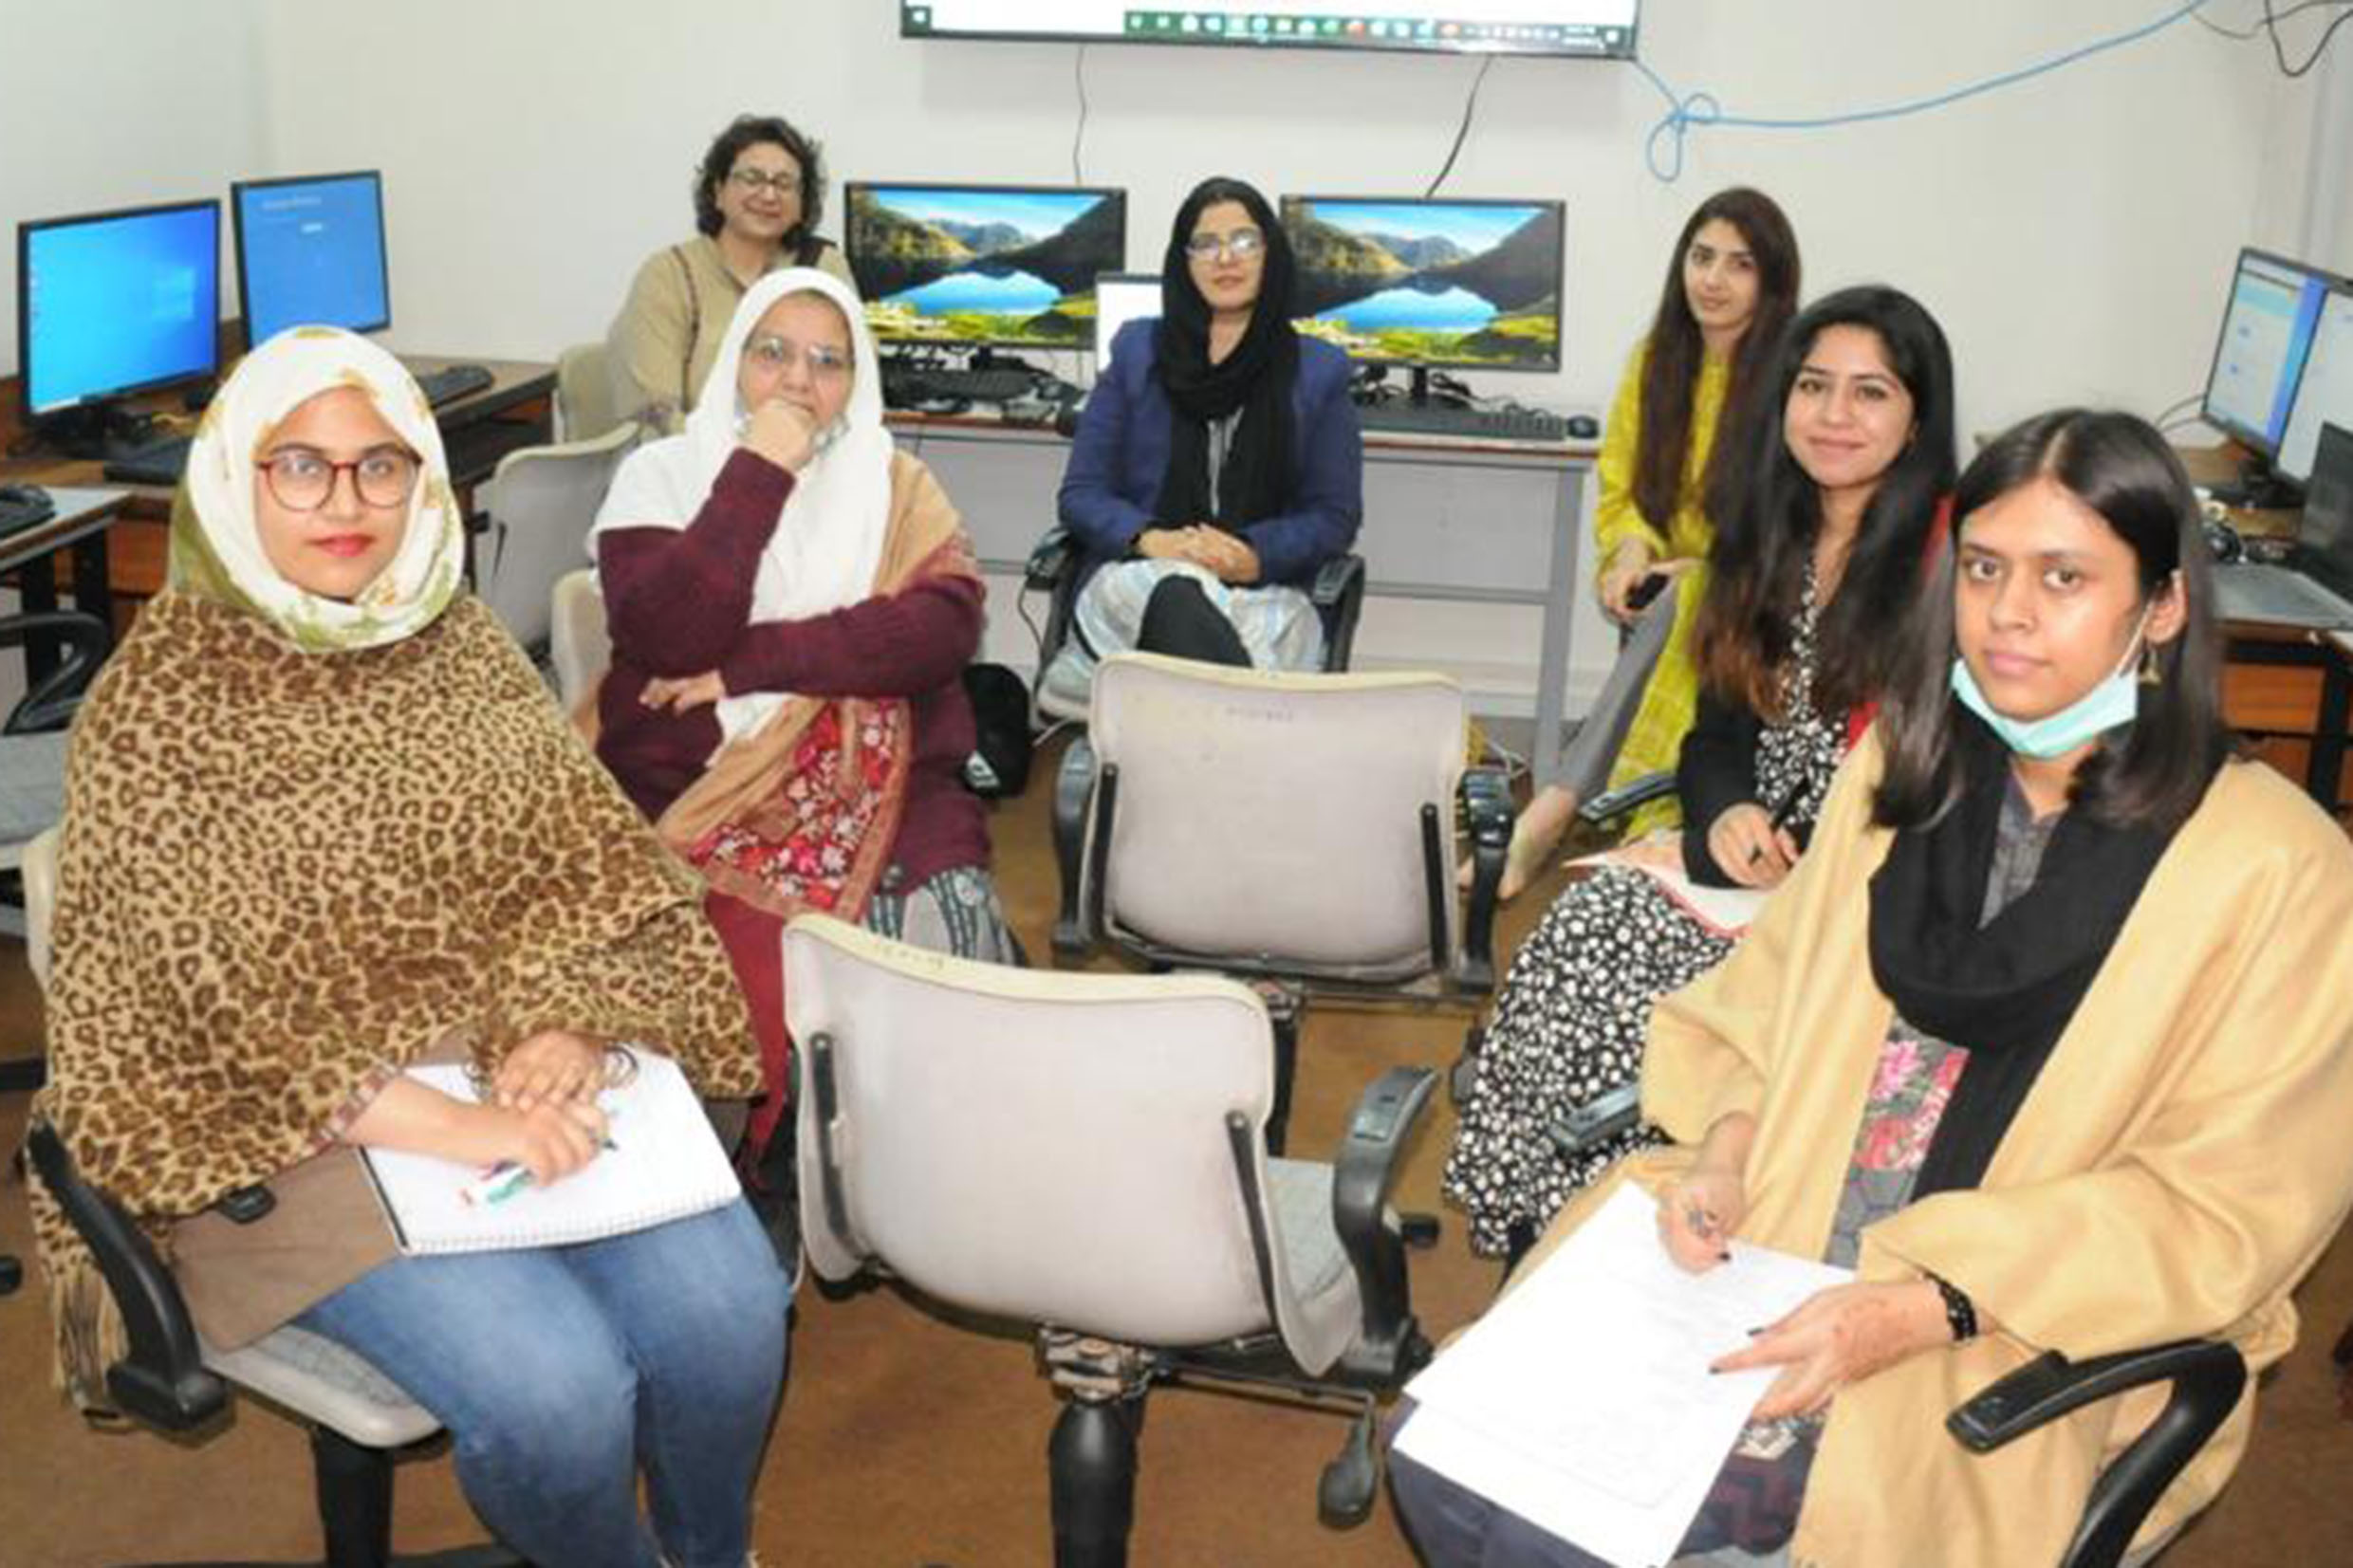 Researchers reach out to support international careers